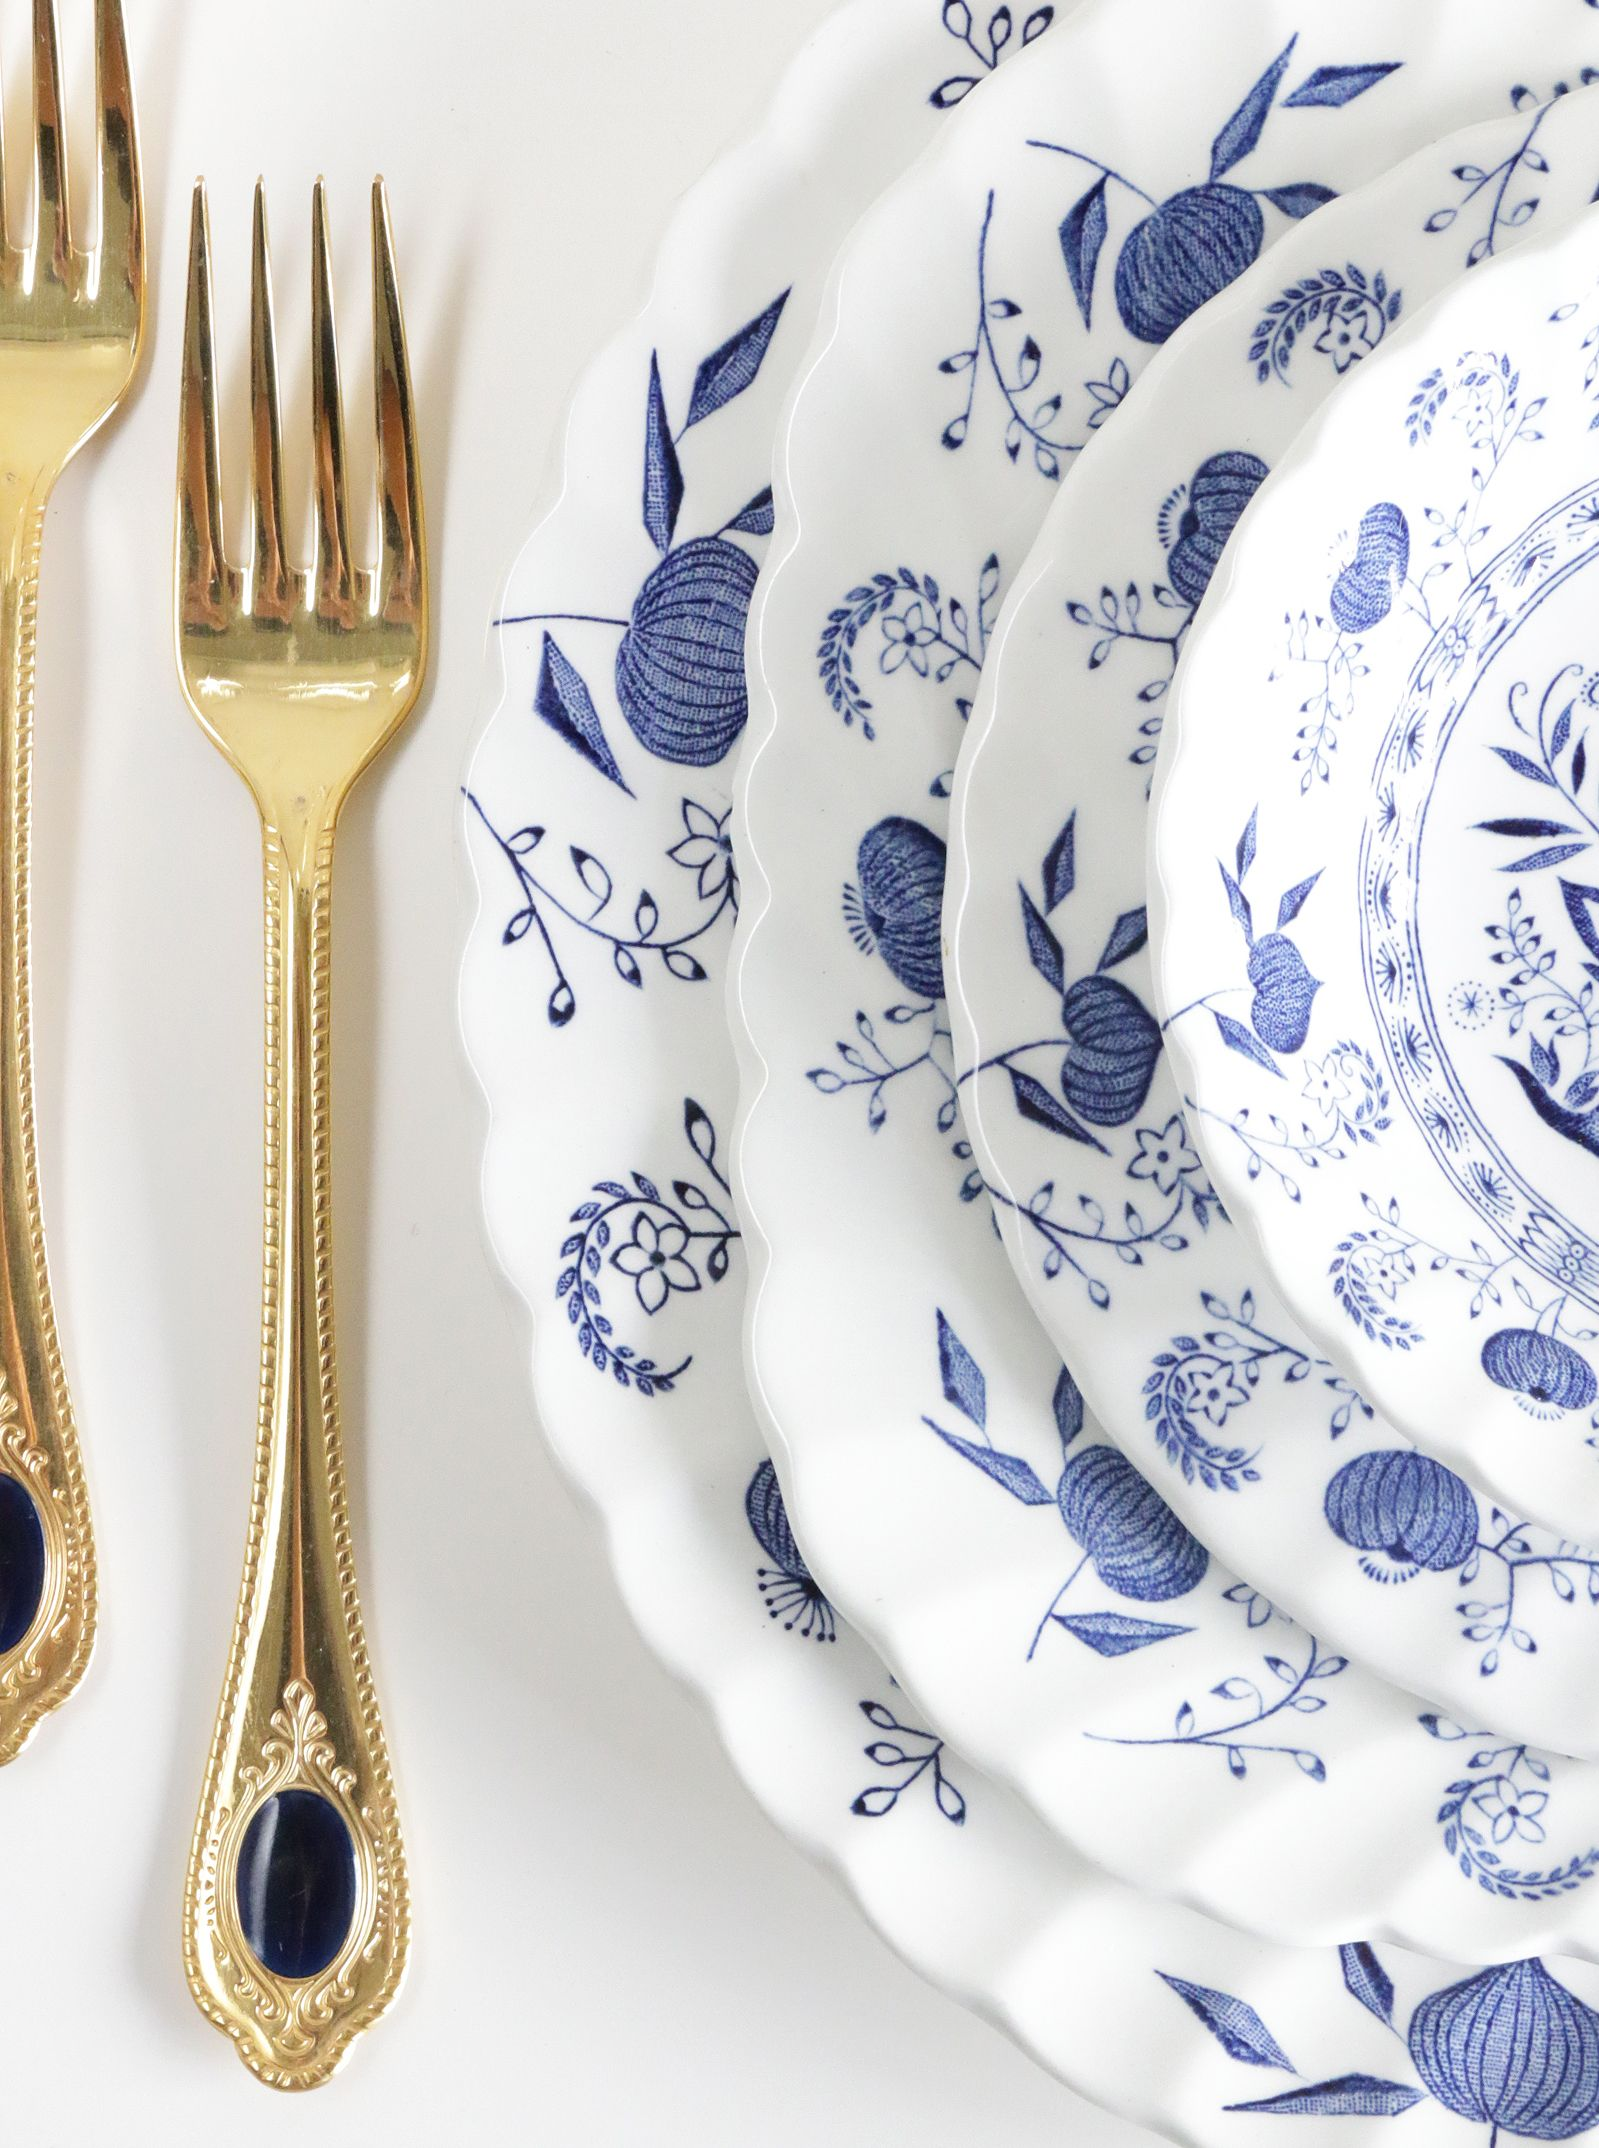 English Blue Nordic Dinnerware Set By Johnson Brothers - Fine China And Glassware - Dining \u0026  sc 1 st  Pinterest & English Blue Nordic Dinnerware Set By Johnson Brothers - Fine China ...